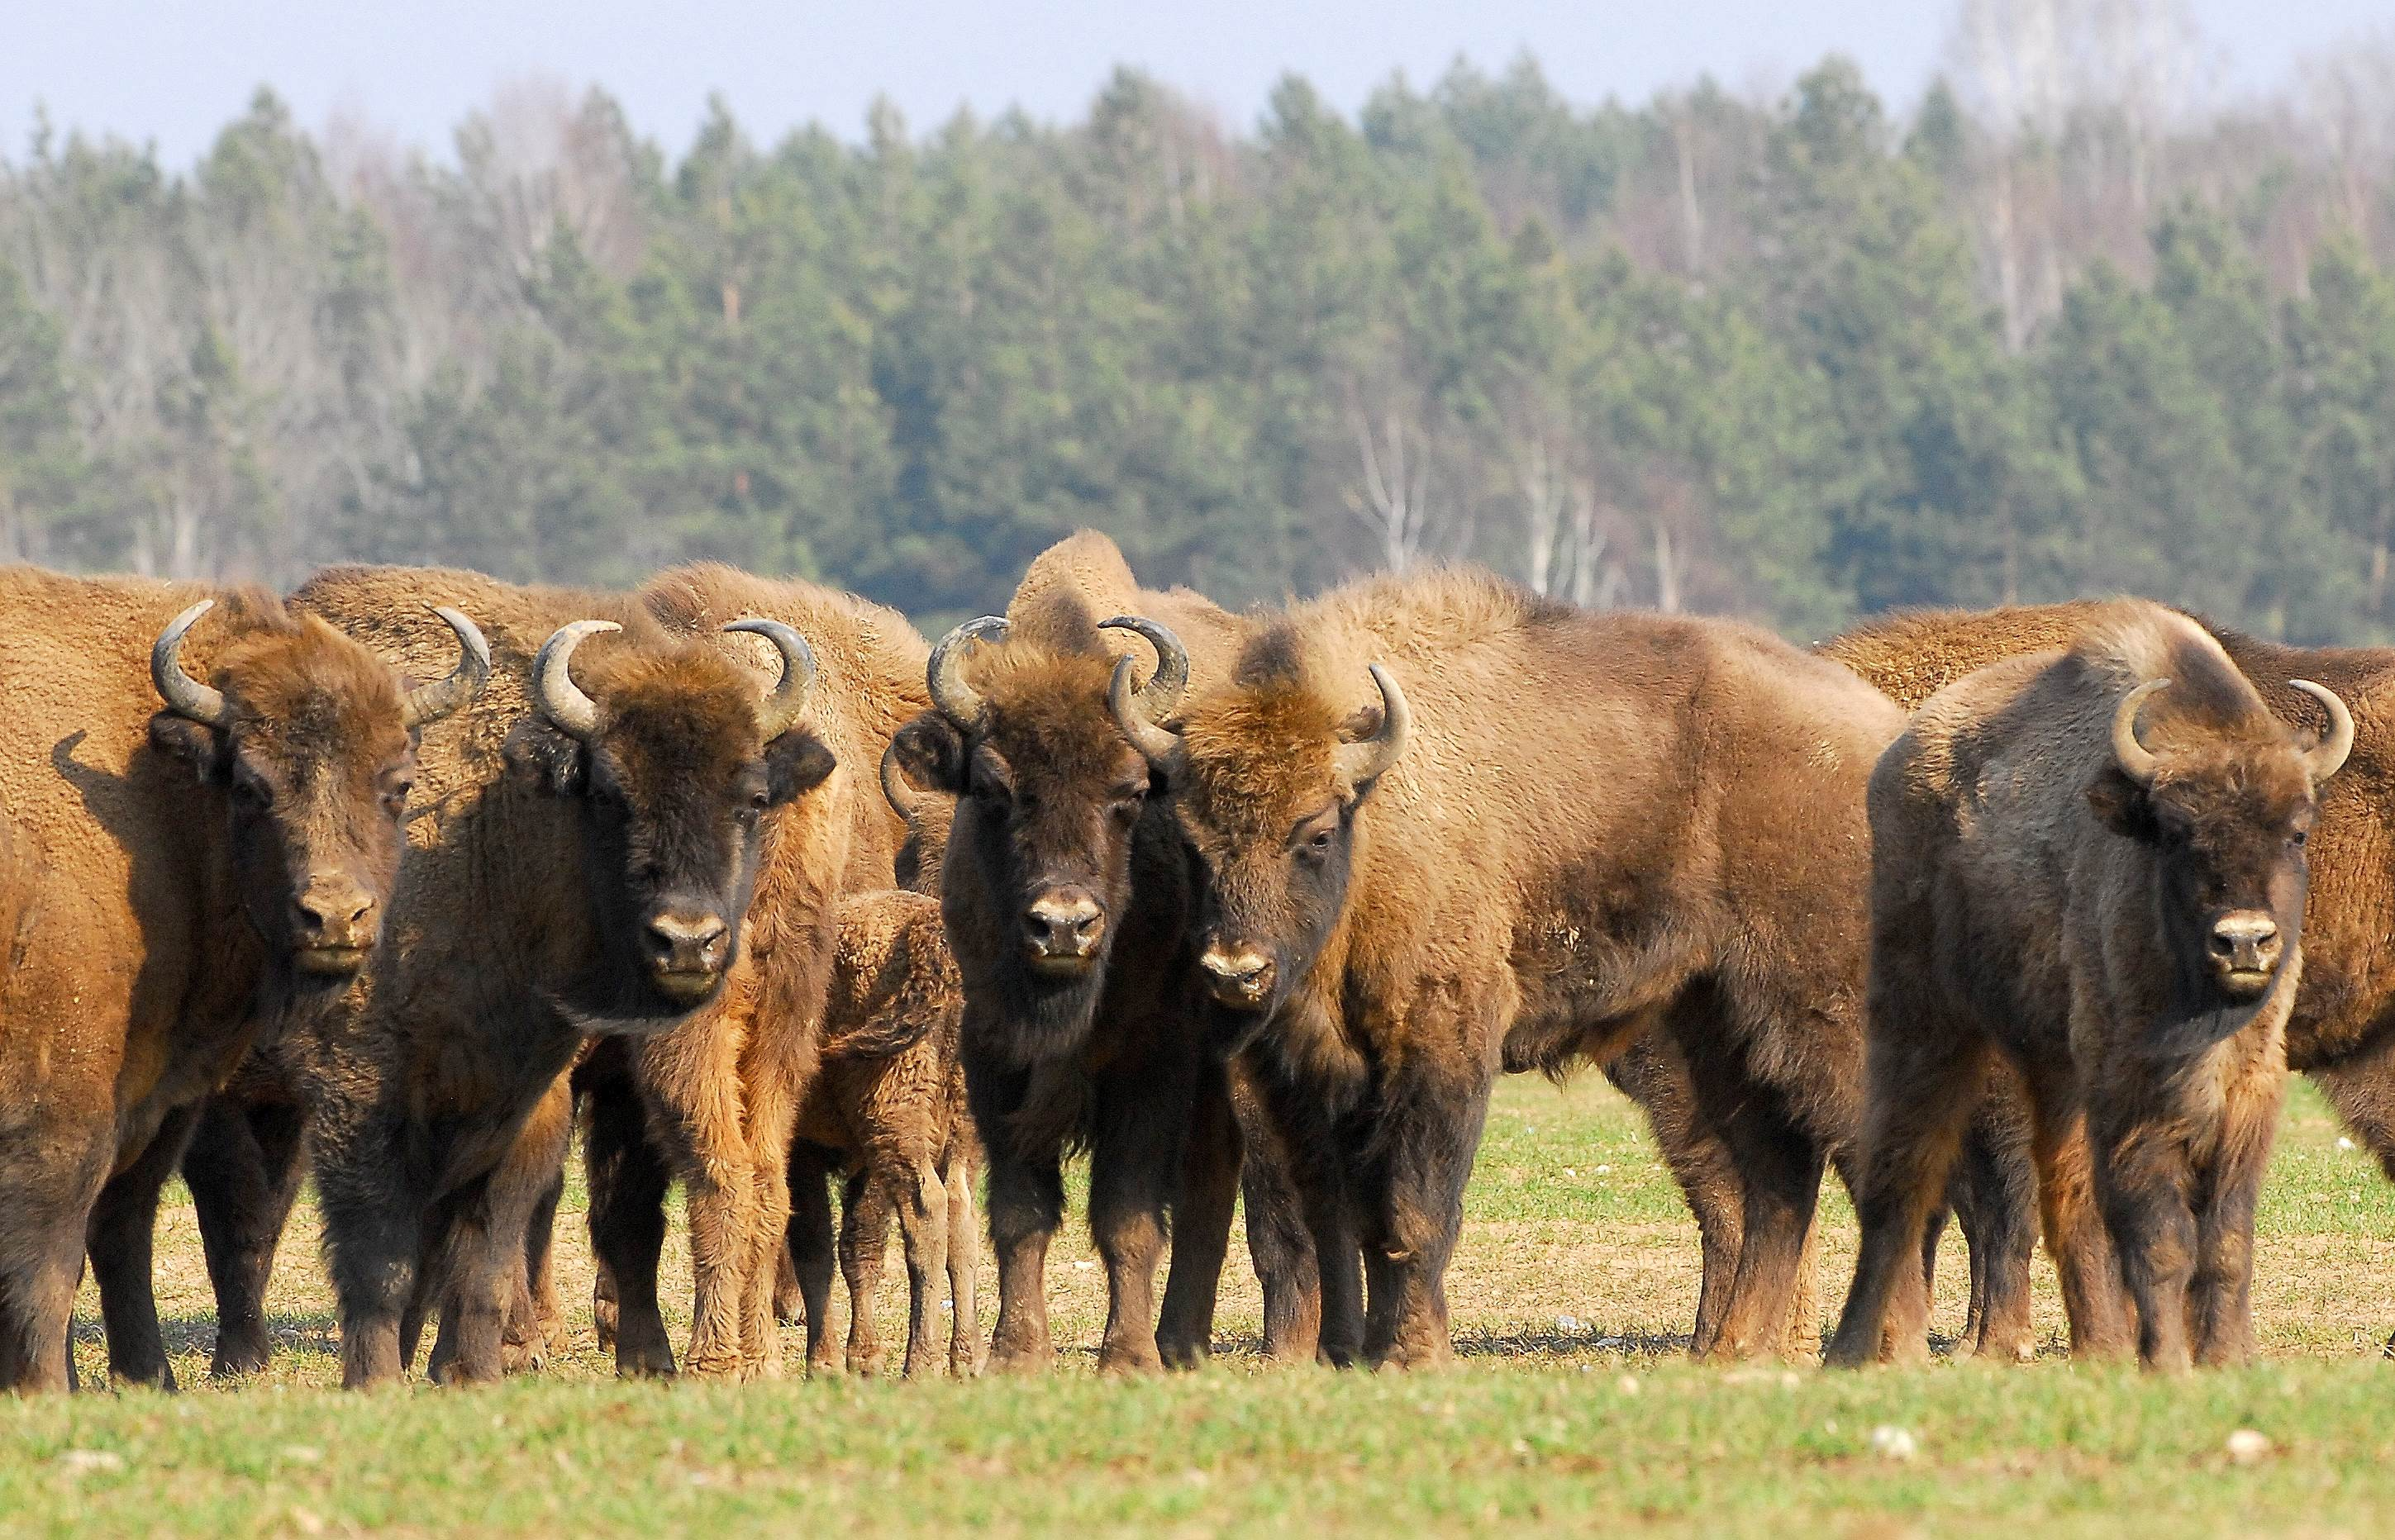 Mainstay of Bison